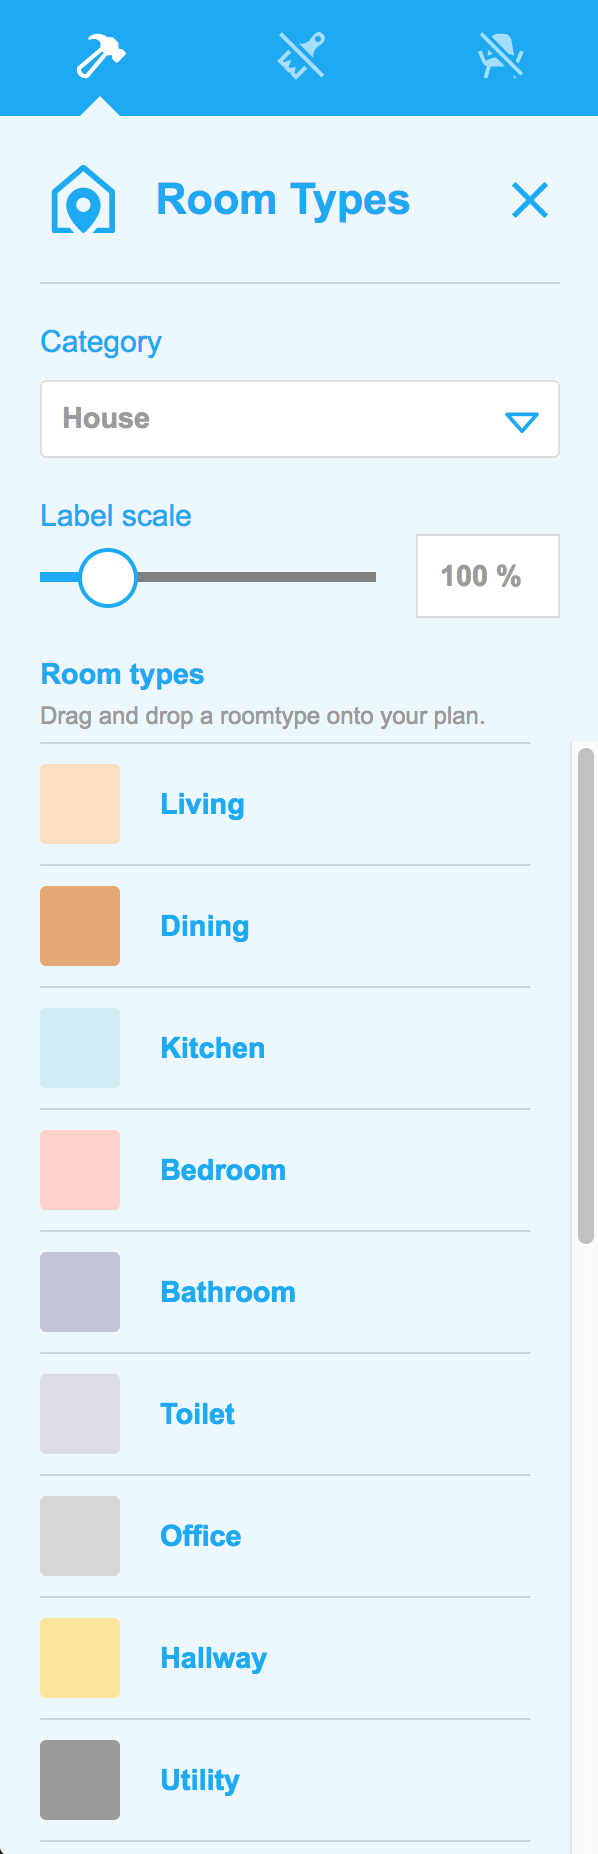 blogpostcontent-roomtypes.png